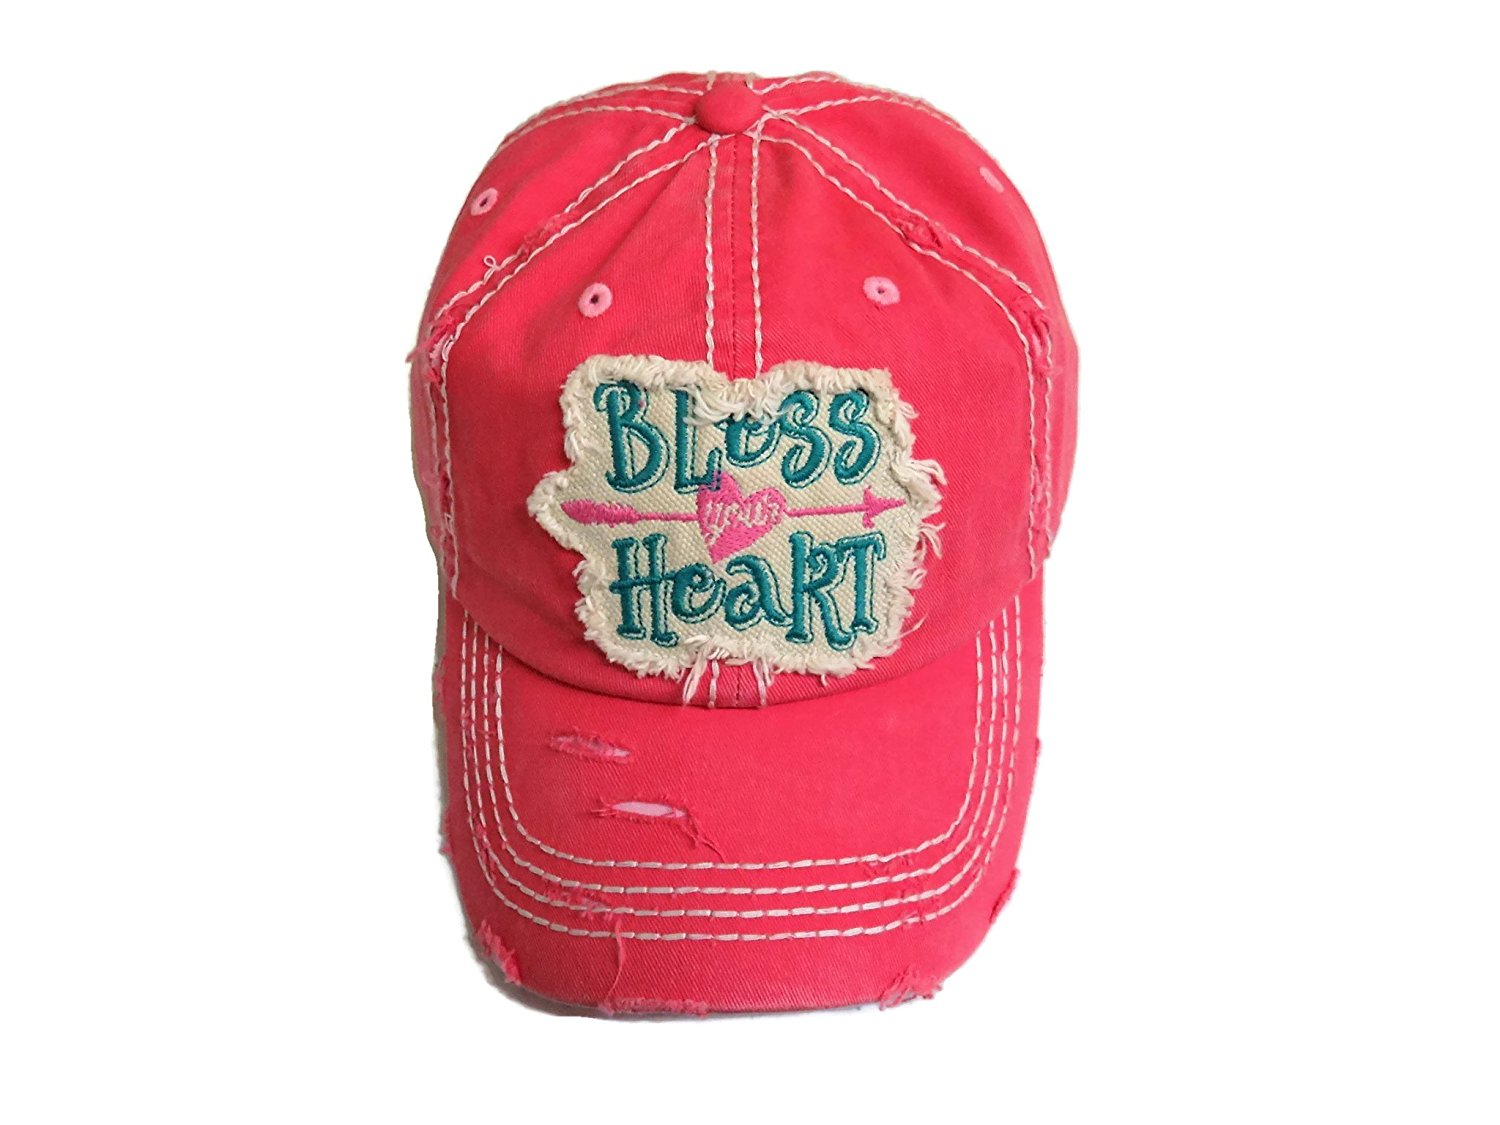 a94fbb54fae2d Get Quotations · Spirit Caps Embroidered Bless Your Heart Frayed Patch  Washed Pink Baseball Cap Hat